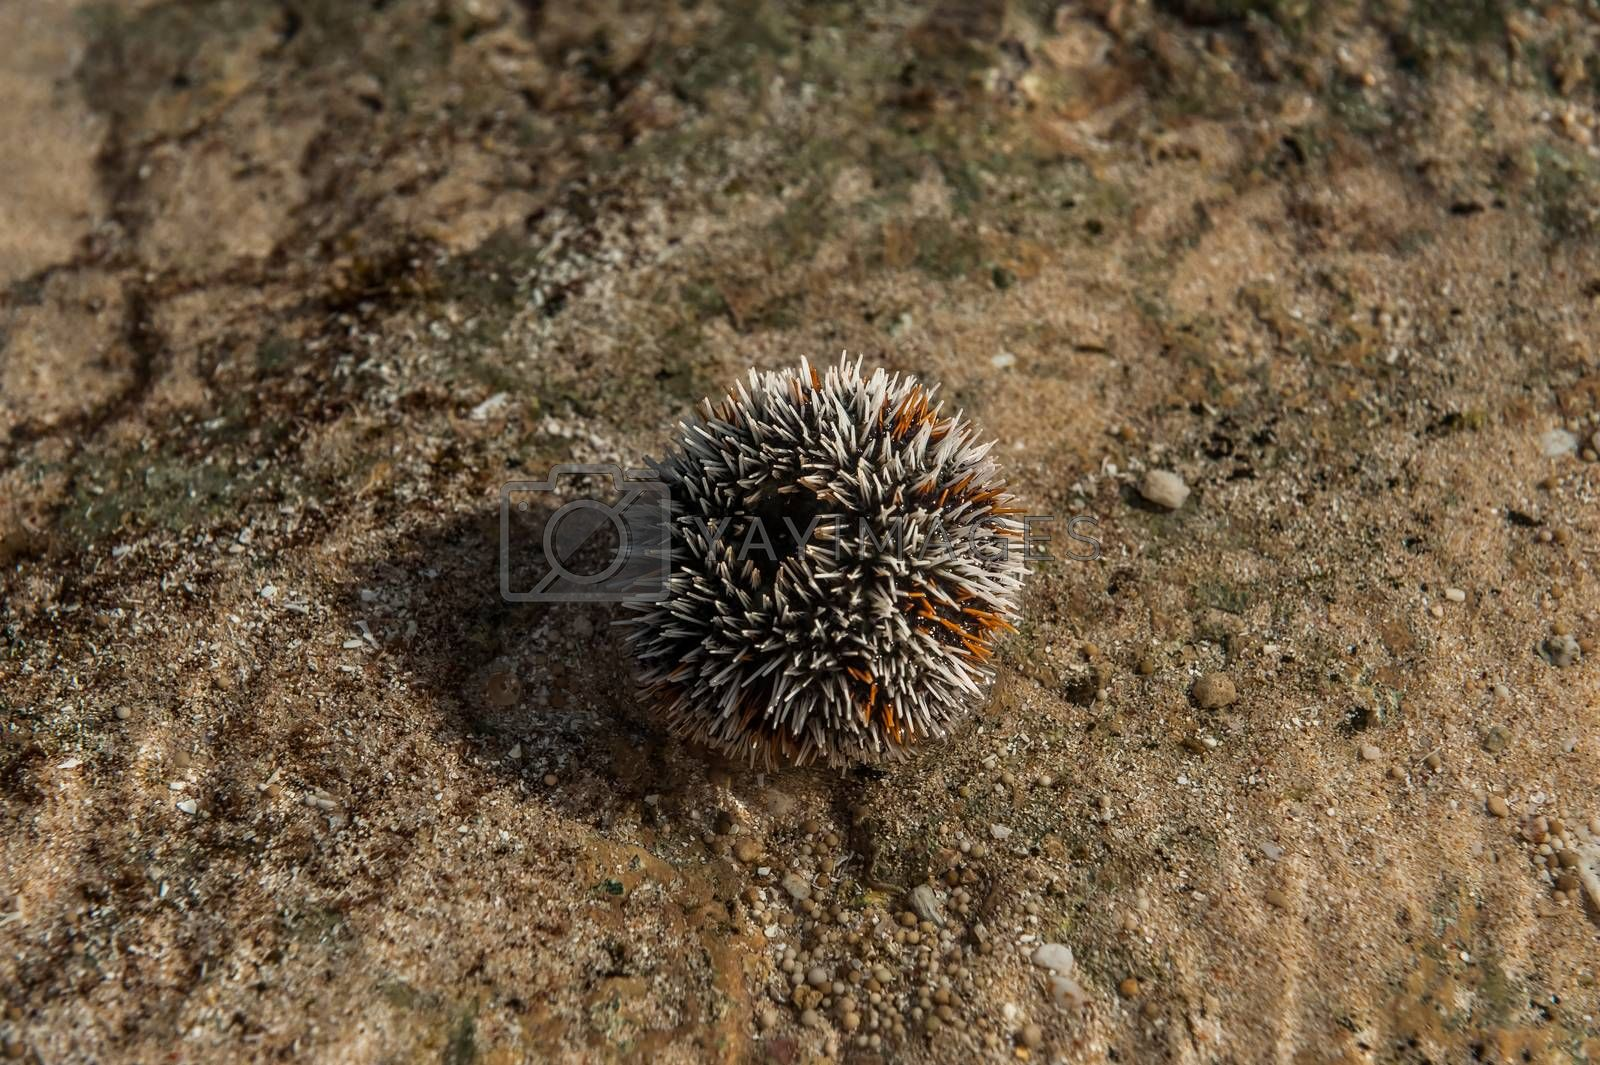 Sea urchin with his needles being ready to defend. White and yellow colored, lying on the stone, out of water.